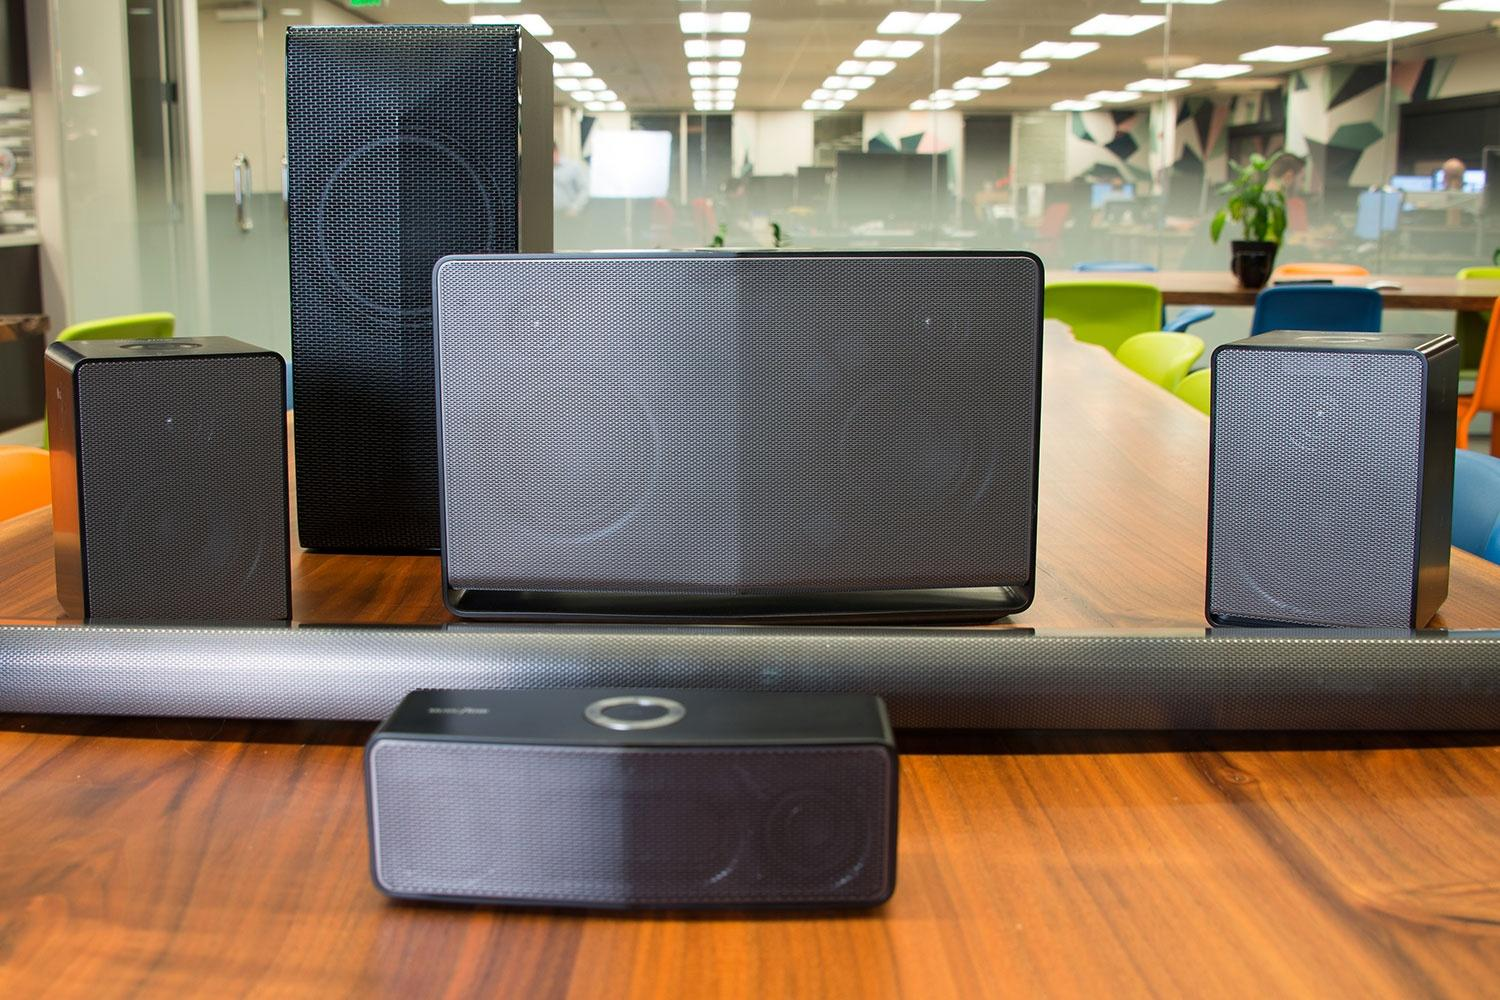 LG Music Flow takes aim at Sonos, but just misses the target